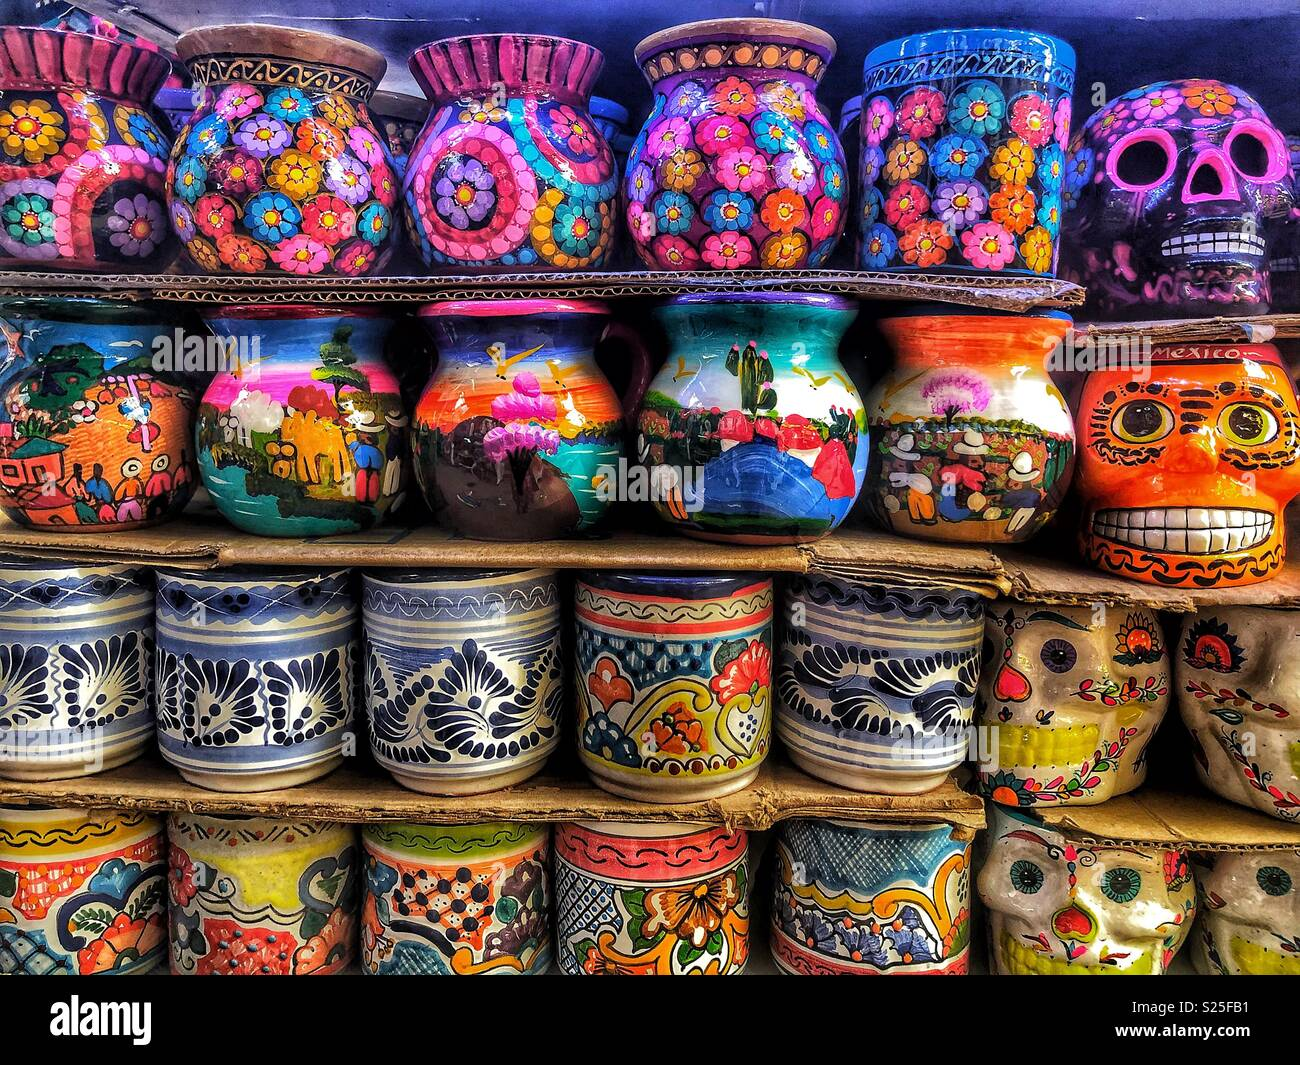 Traditional Mexican Pottery and Skulls In Bright Colors - Stock Image